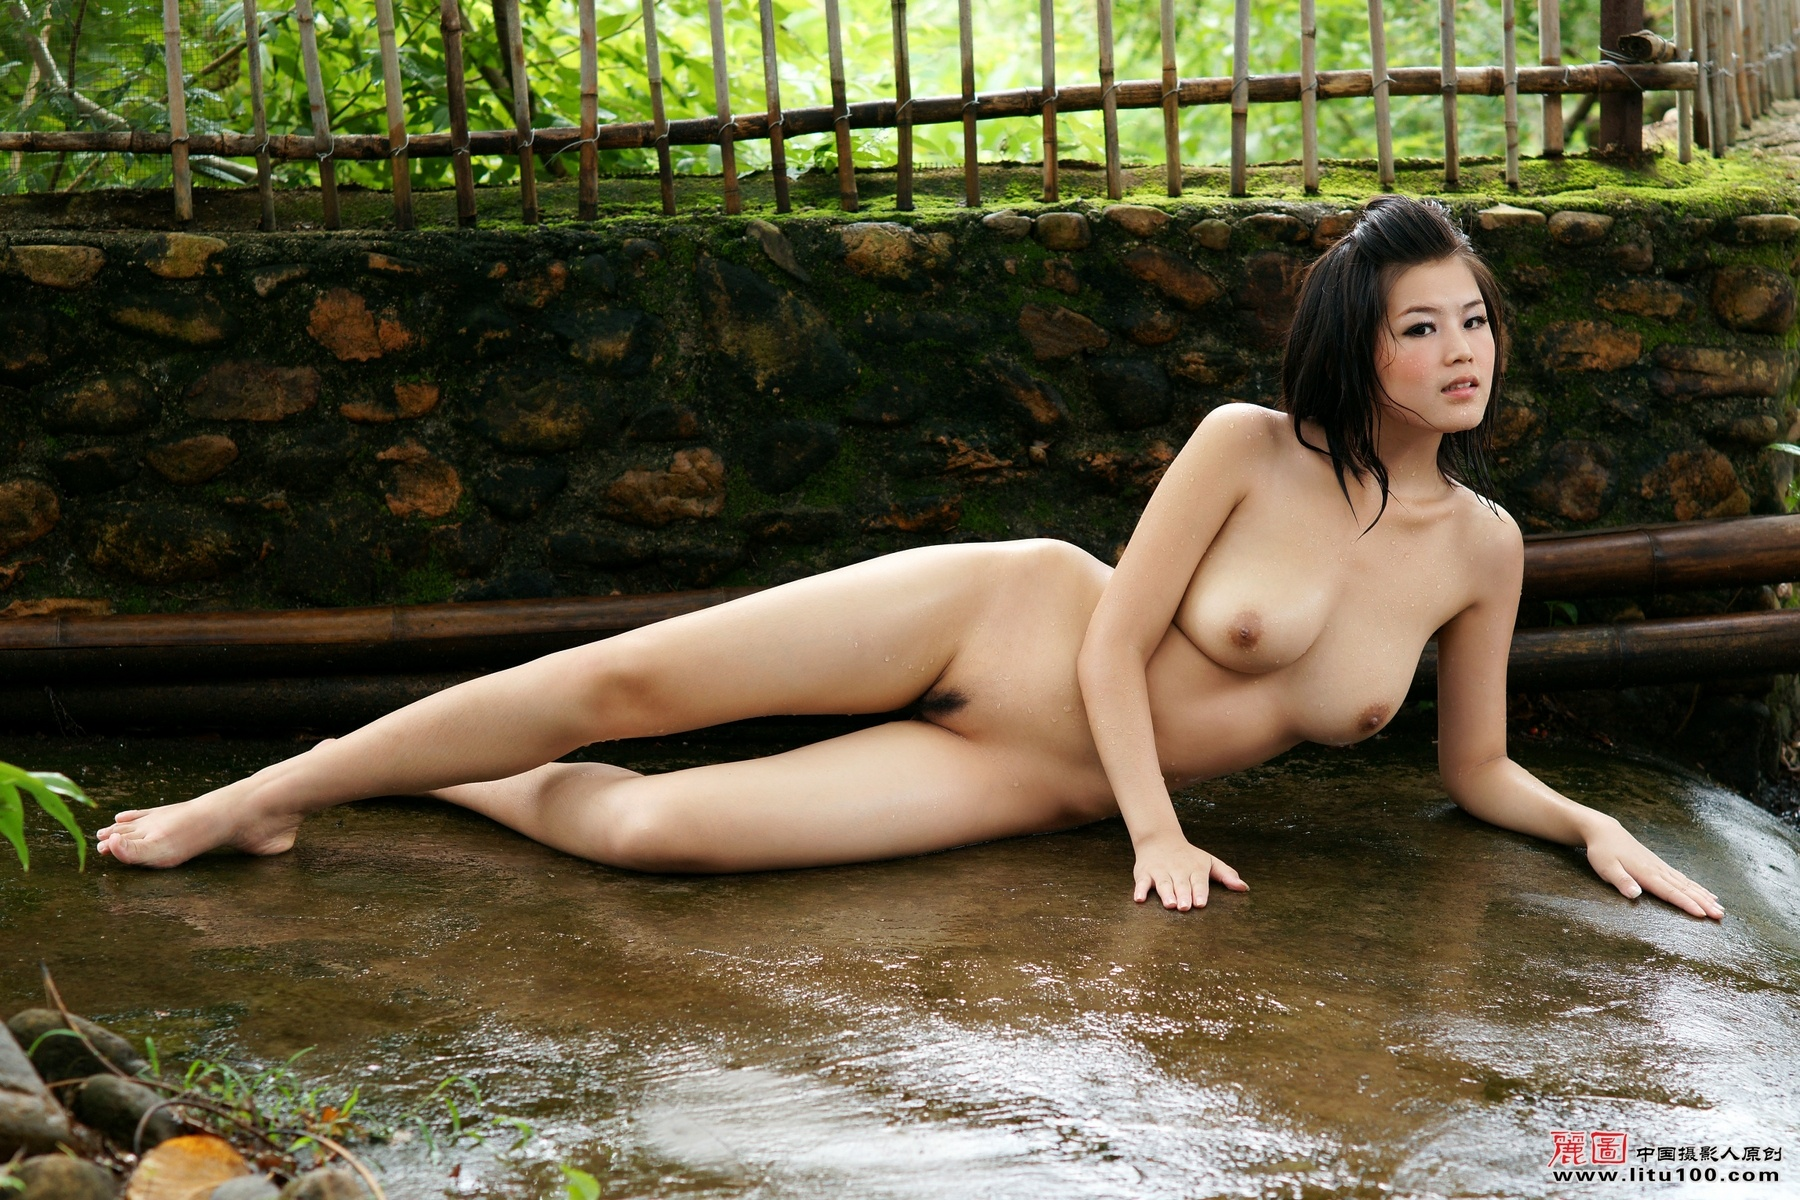 naked-body-search-in-vietnam-real-wife-amature-home-video